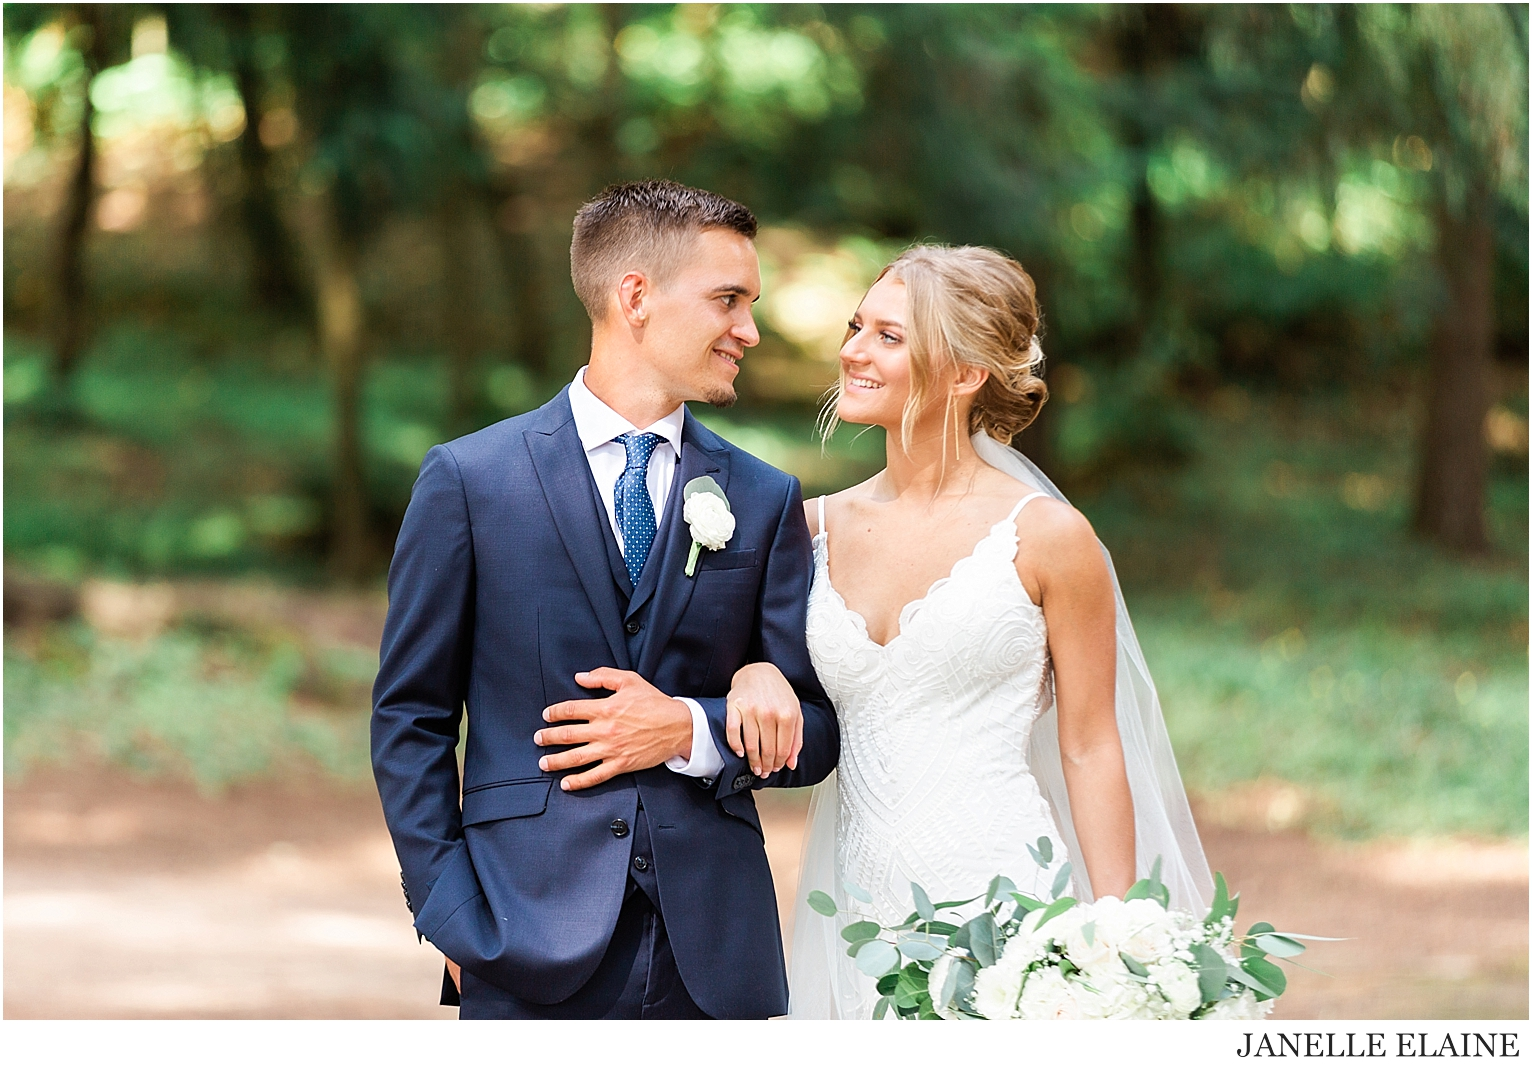 Tricia and Nathan Goddard Wedding-First Look and Portraits-Janelle Elaine Photography-75.jpg